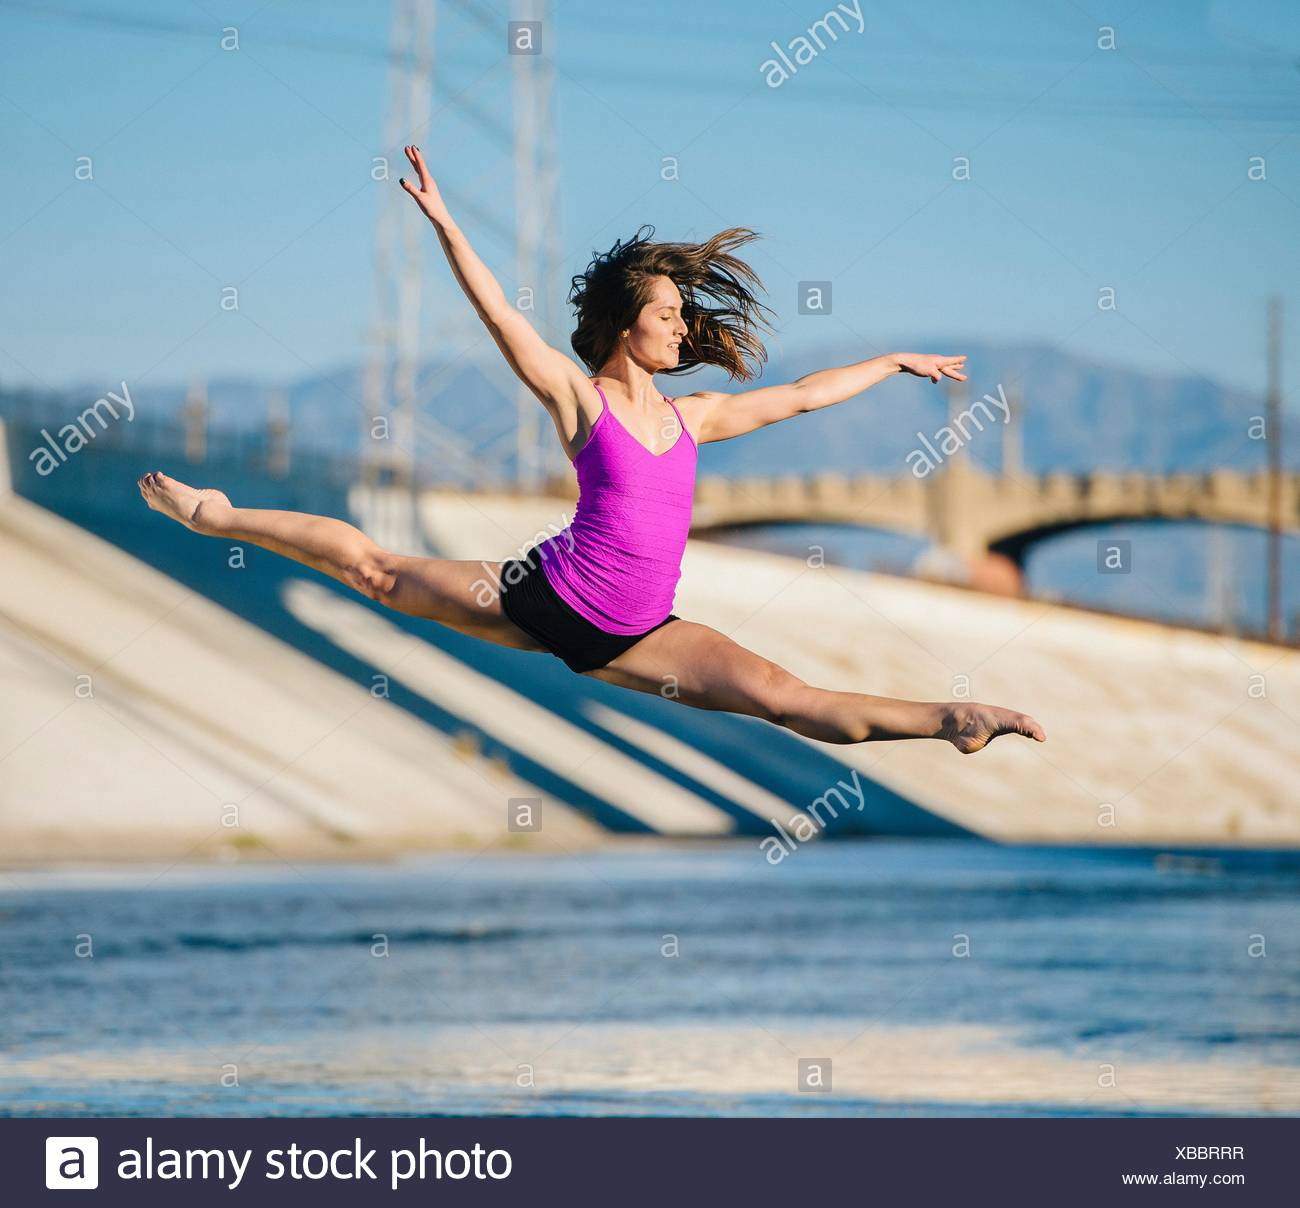 Dancer in mid air, arms raised doing the splits, Los Angeles, California, USA - Stock Image